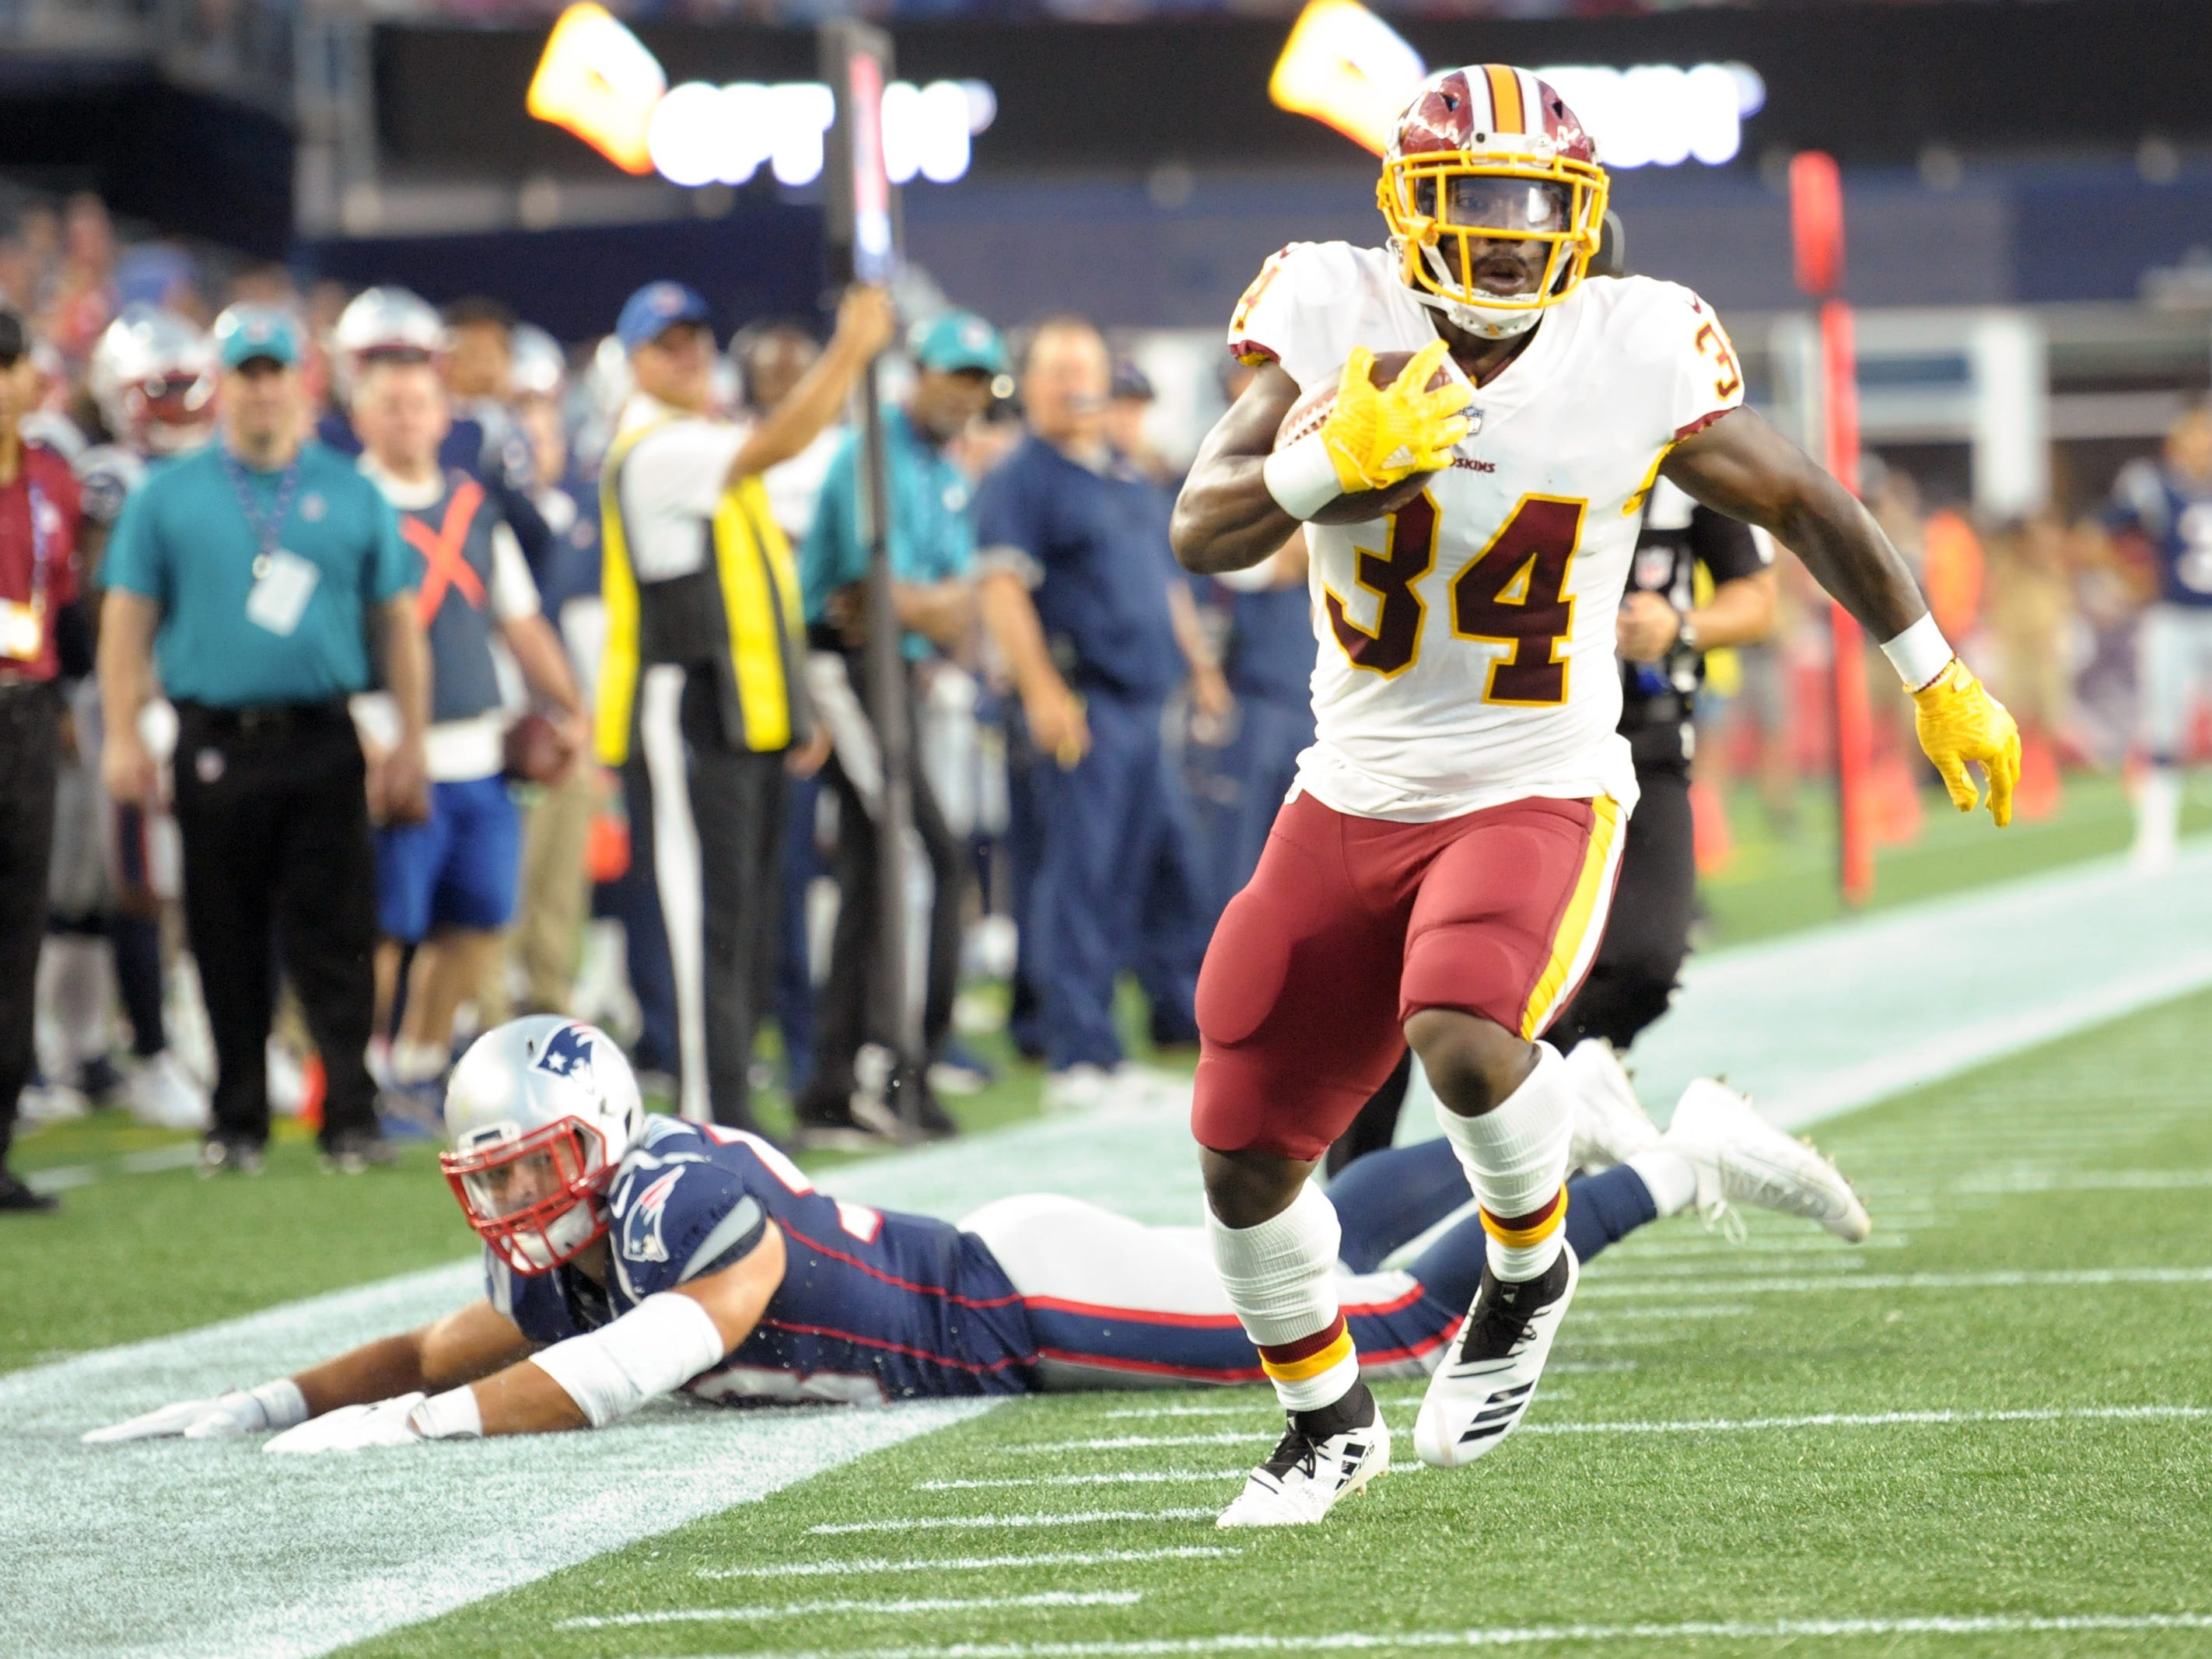 Washington Redskins running back Byron Marshall (34) scores a touchdown during the first half against the New England Patriots at Gillette Stadium.